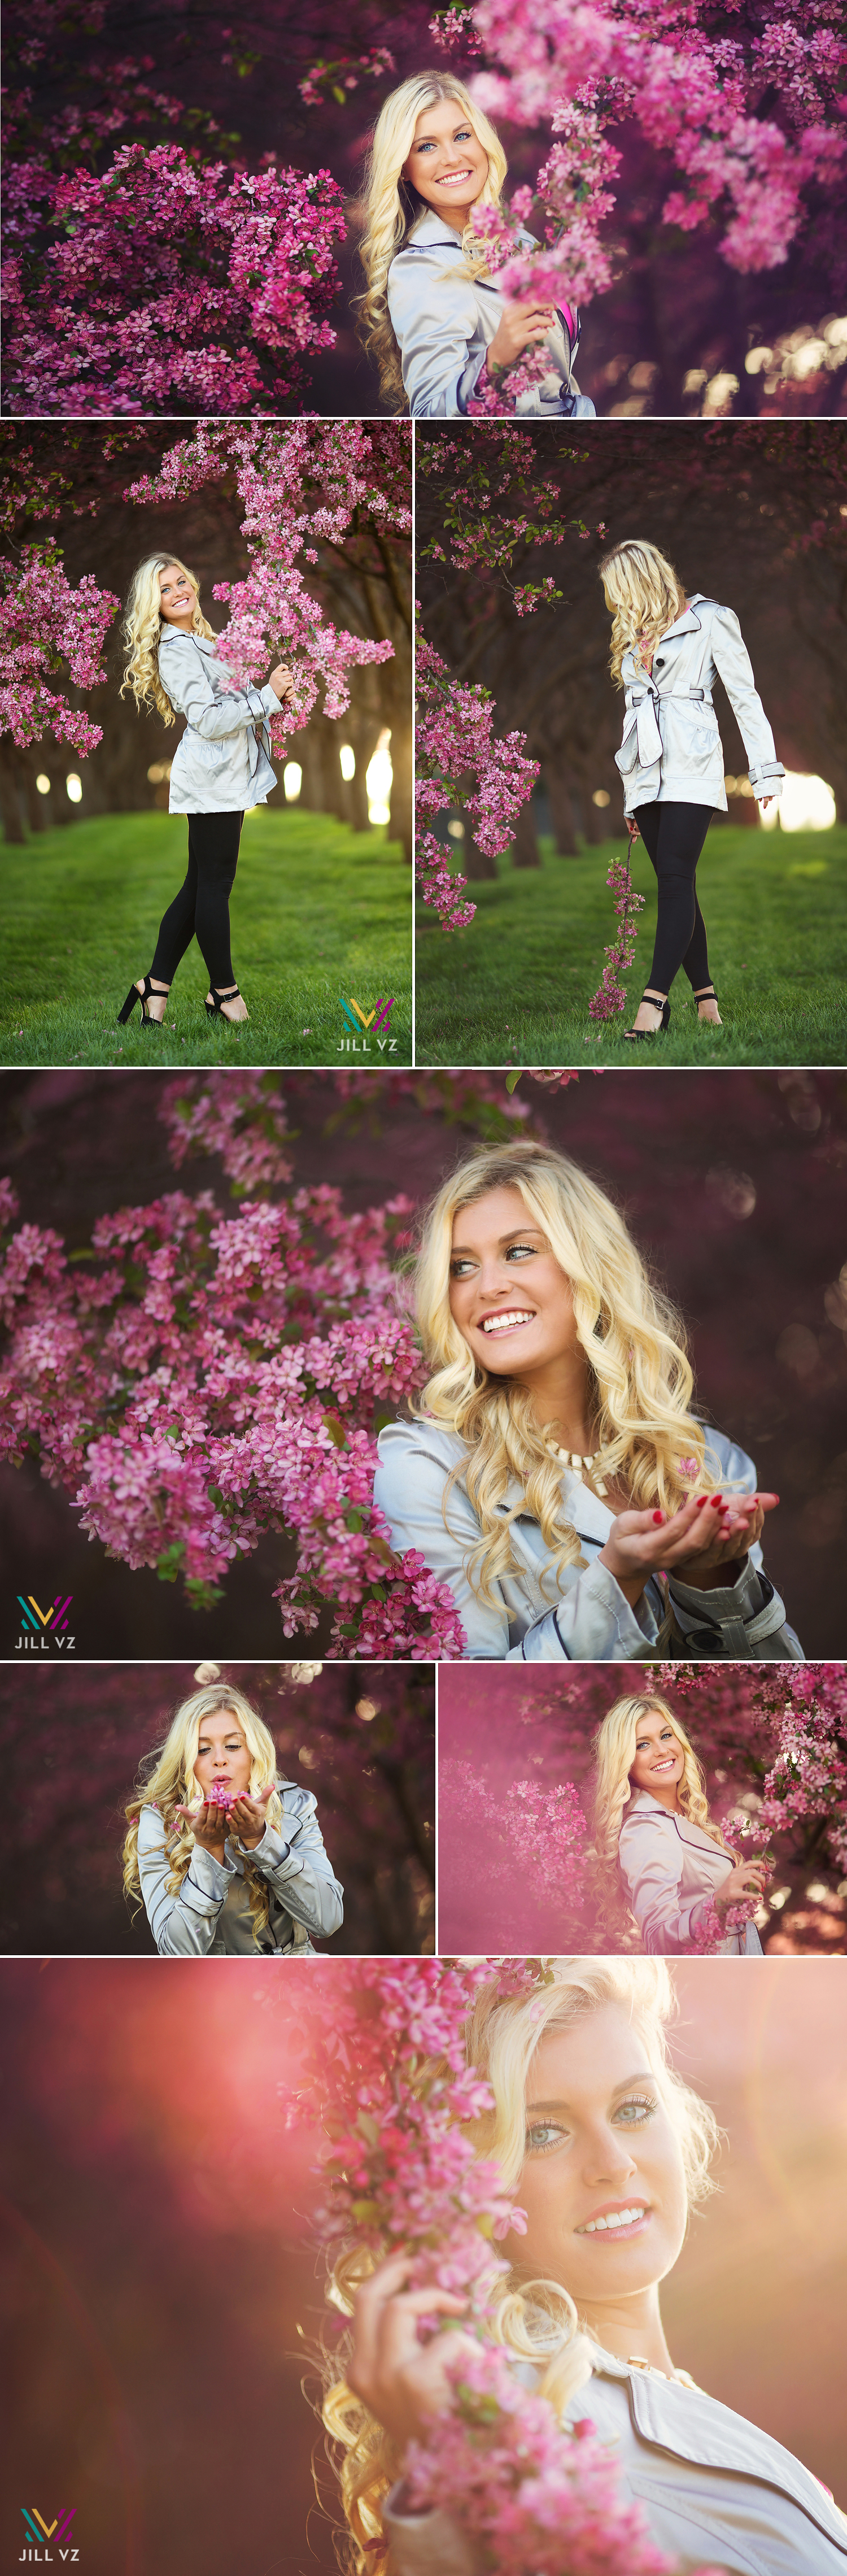 Johnston iowa senior photos in the flowers